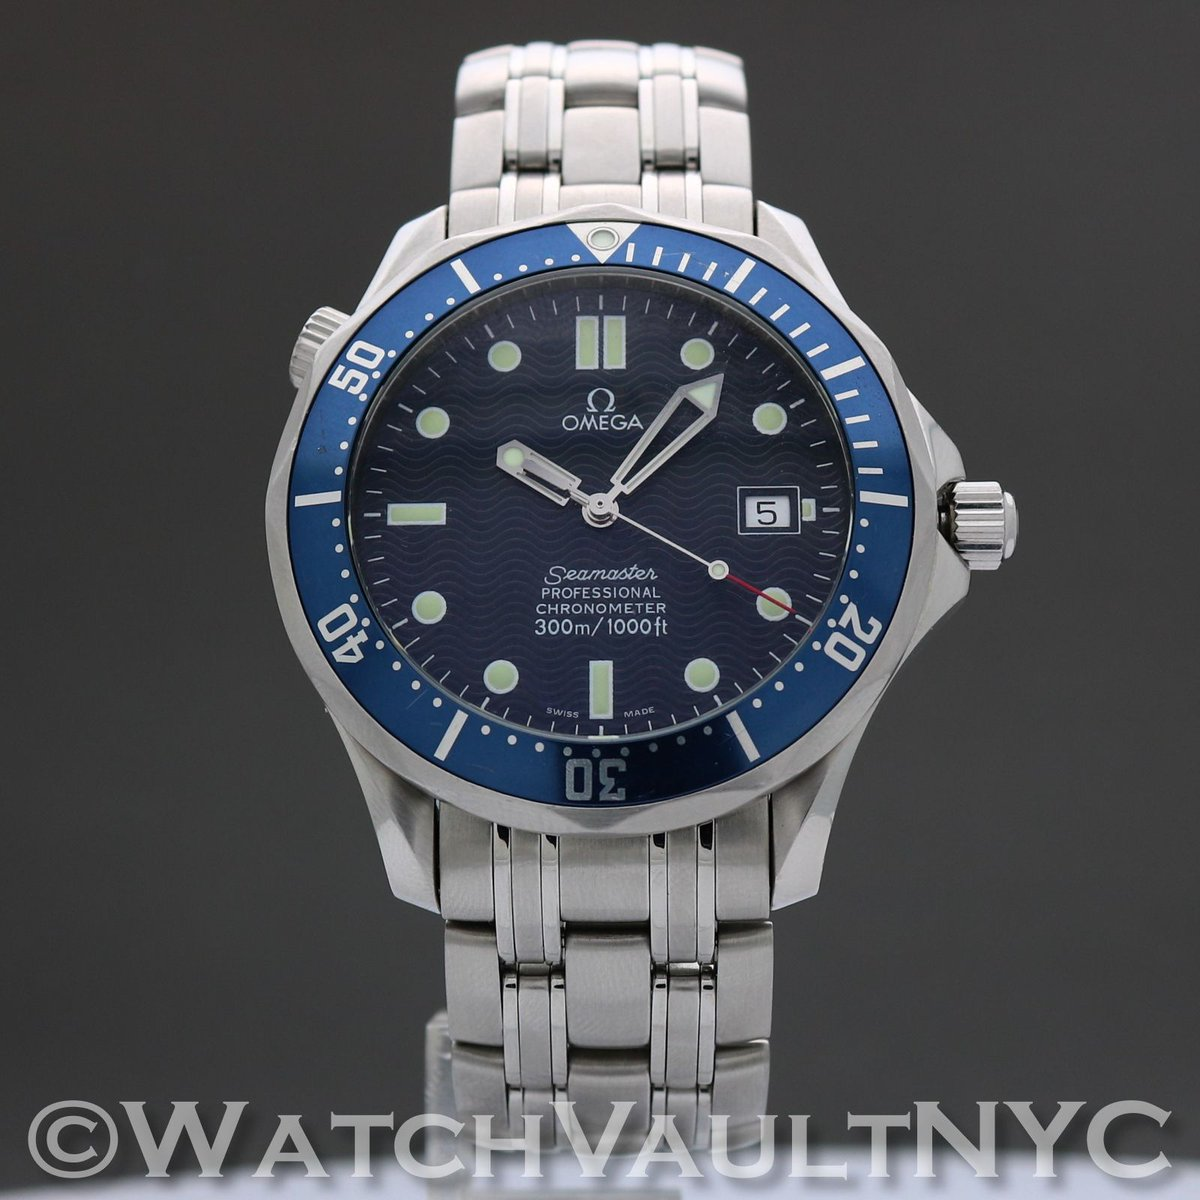 #jamesbond #piercebrosnan #wristwatch in #tomorrowneverdies #theworldisnotenough #dieanotherday and #iconic #dive #watch #omega #seamaster #253180 just arrived and #forsale at #watchvaultnyc #watchpornTap my profile to shop,email or call about this watch!